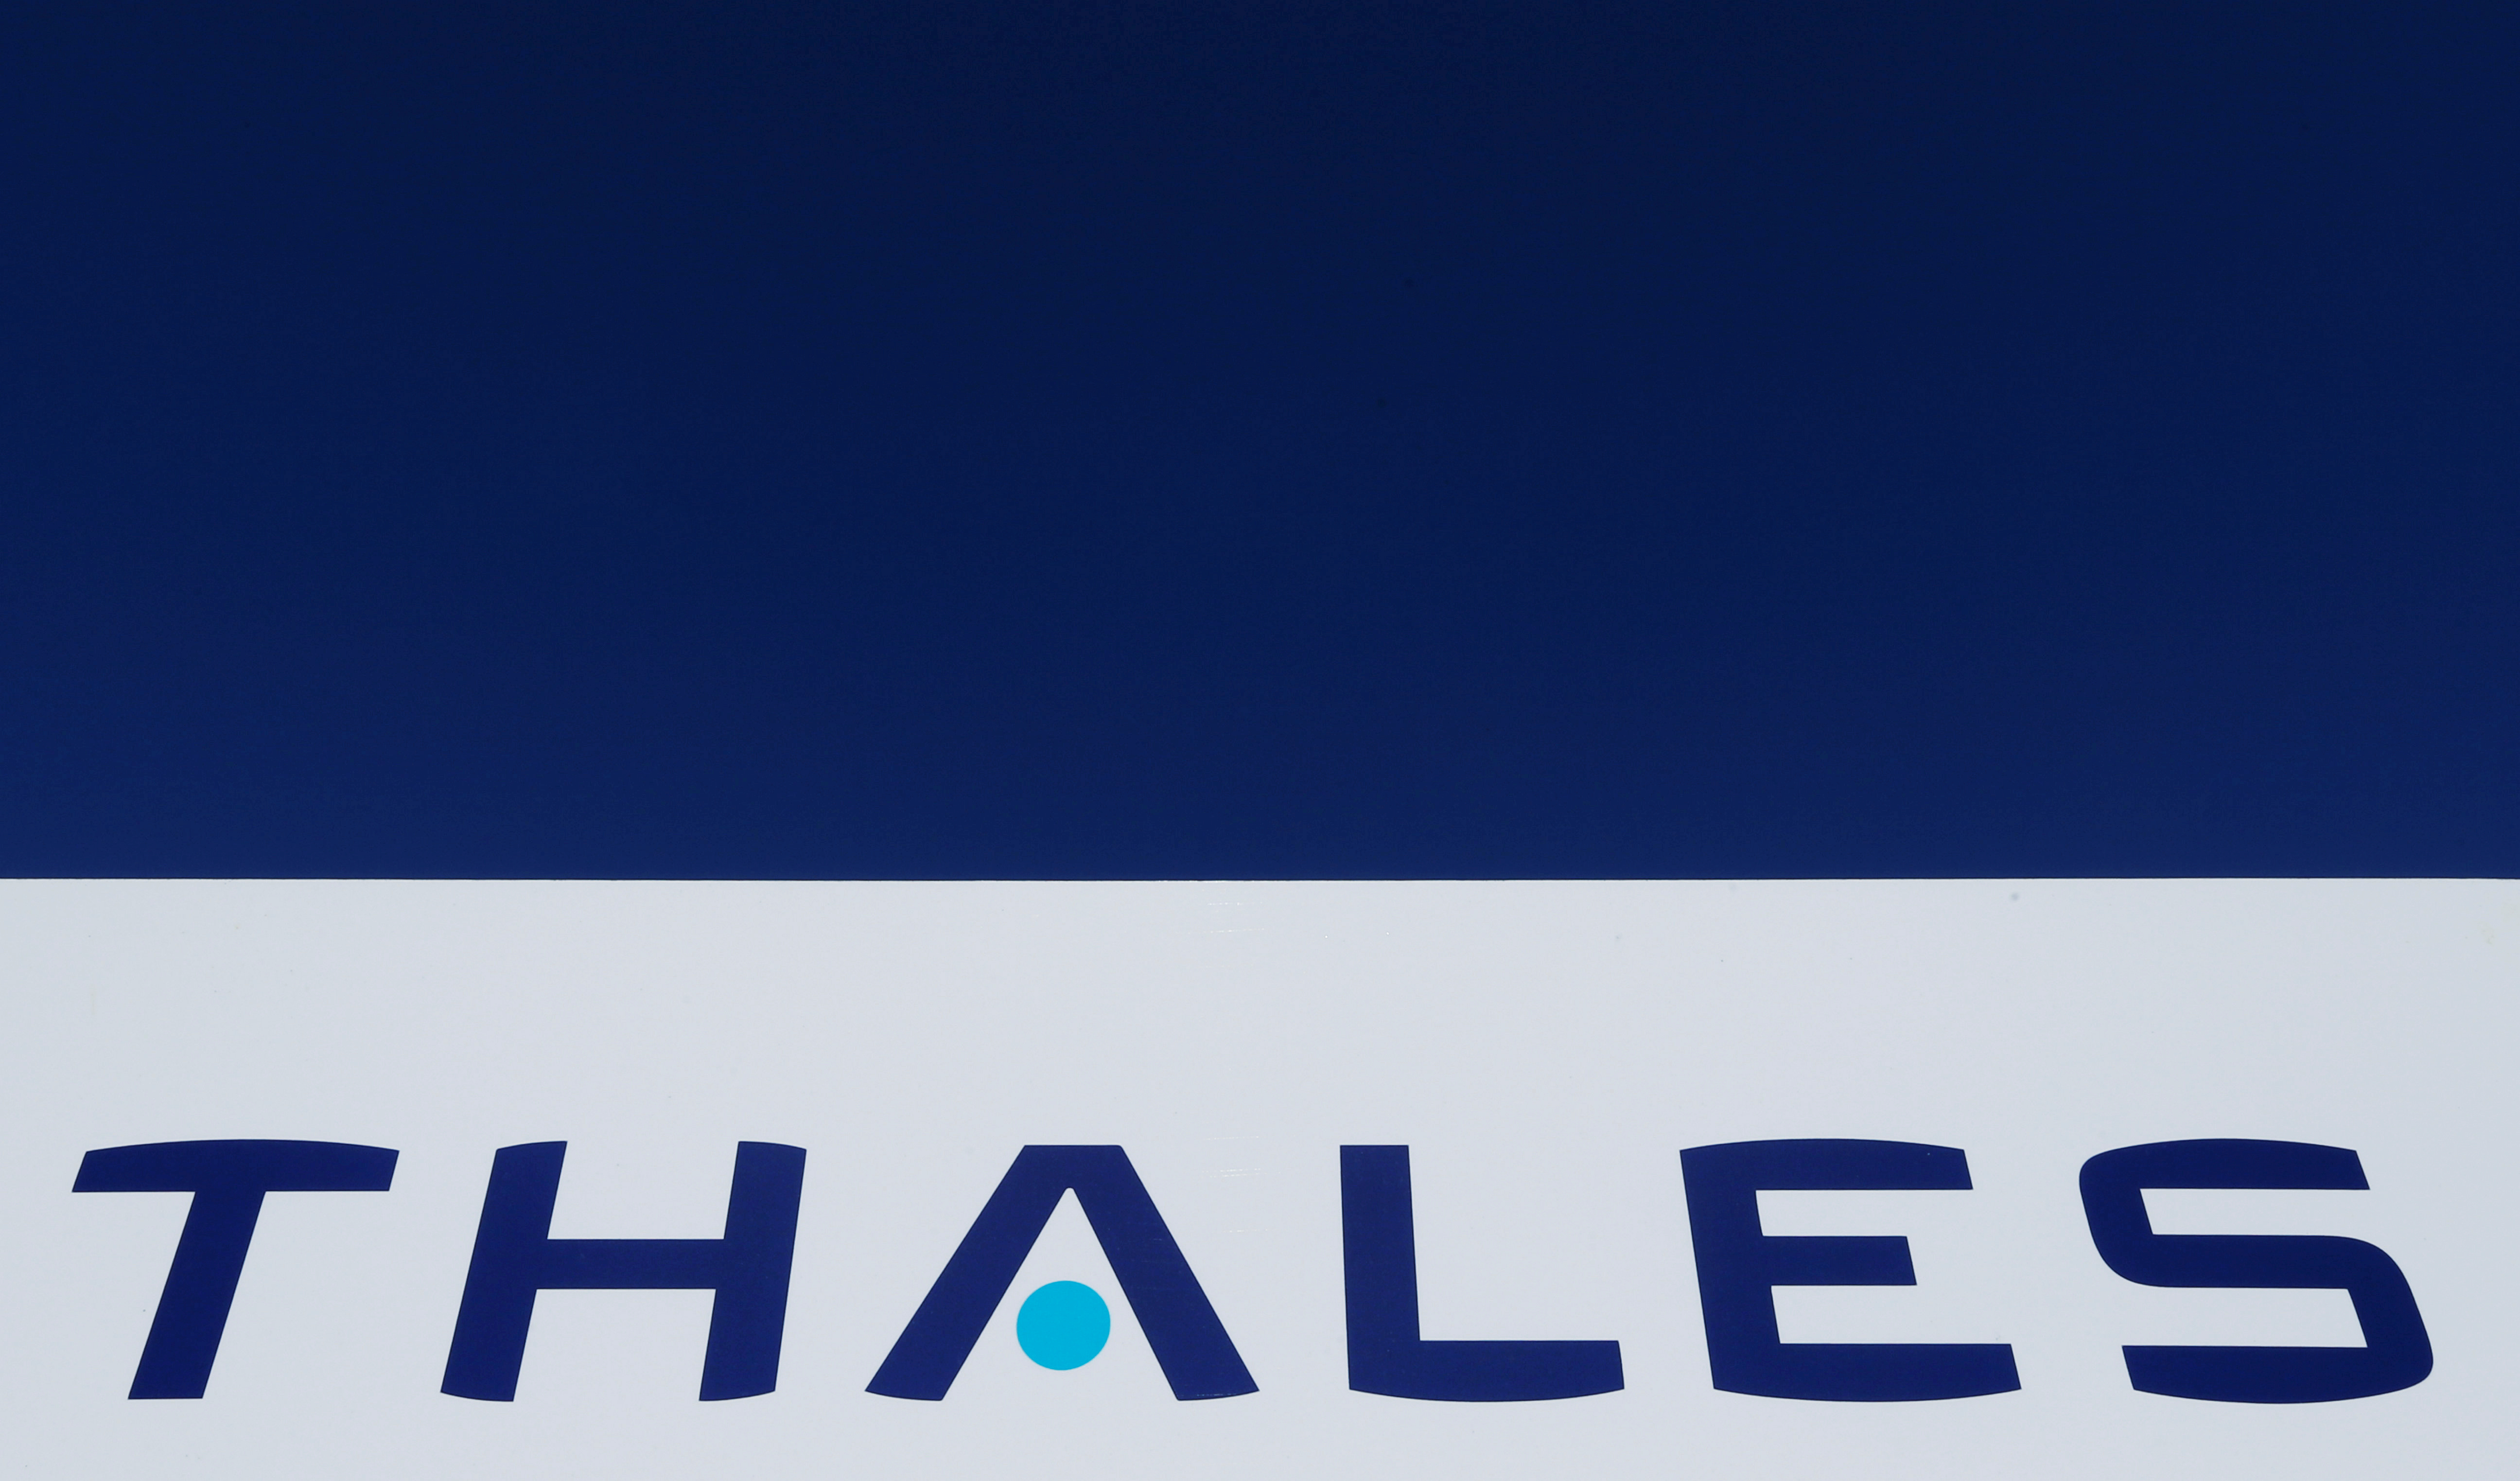 The logo of French defence and electronics group Thales is seen at the company's headquarters in Merignac near Bordeaux, France, March 22, 2019. REUTERS/Regis Duvignau